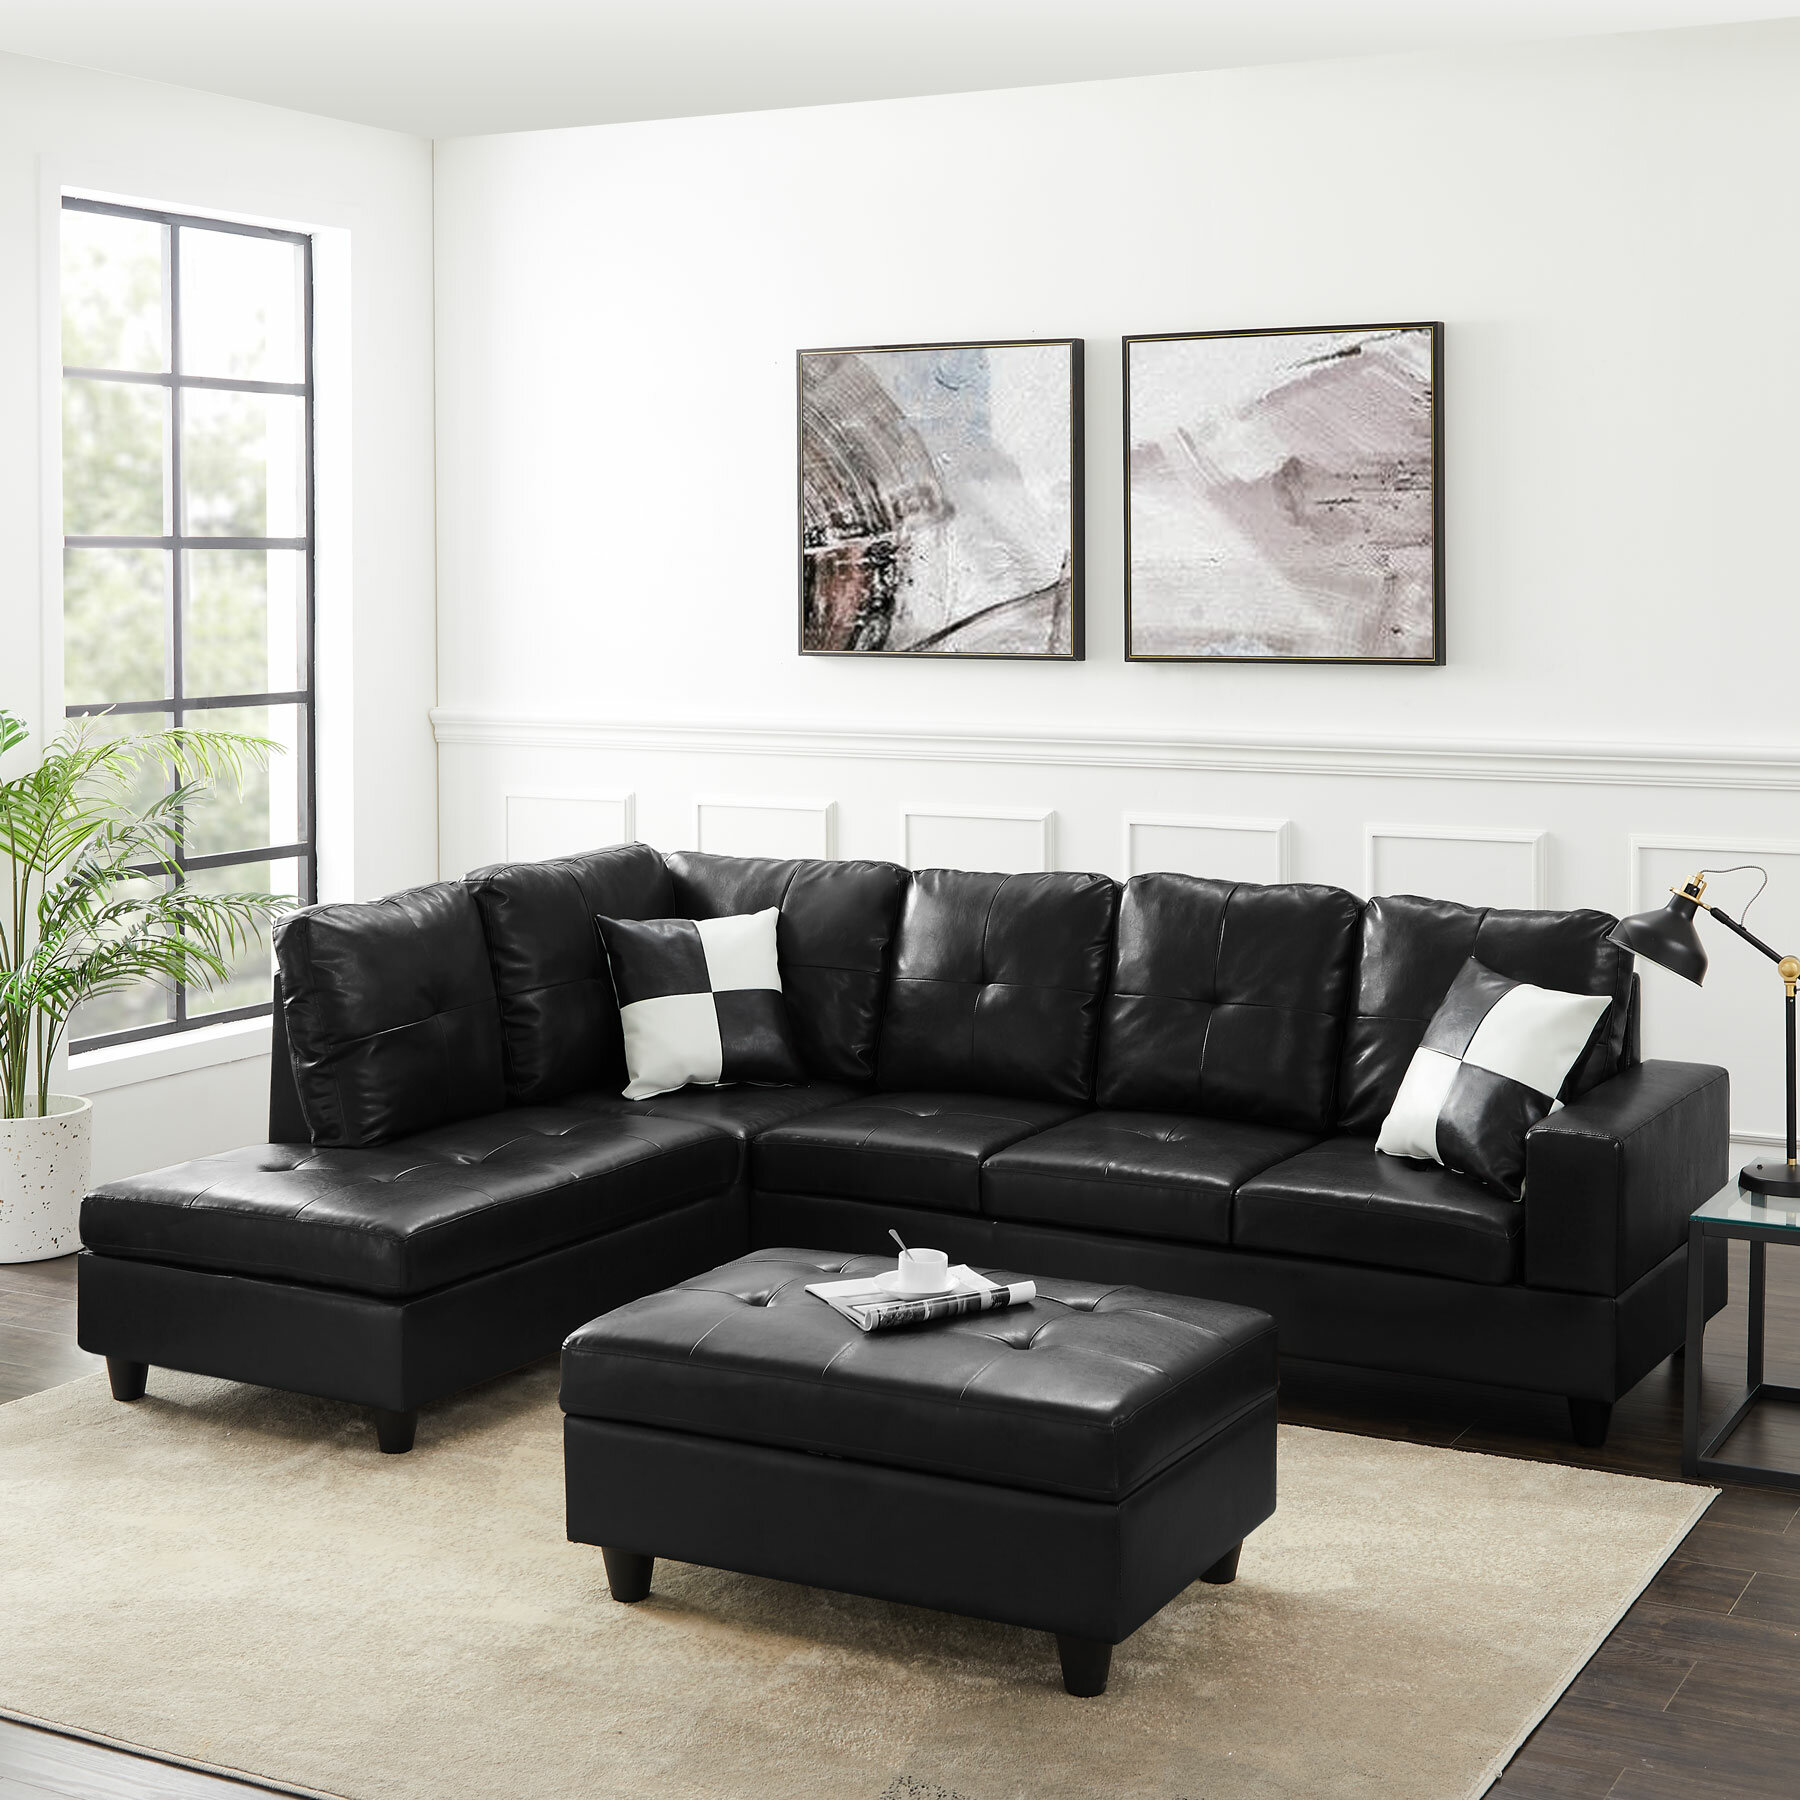 Latitude Run Modern Large Pu Sectional Sofa L Shape Couch With 2 Throw Pillows For Living Room Black Brown Right Hand Facing Wayfair Ca